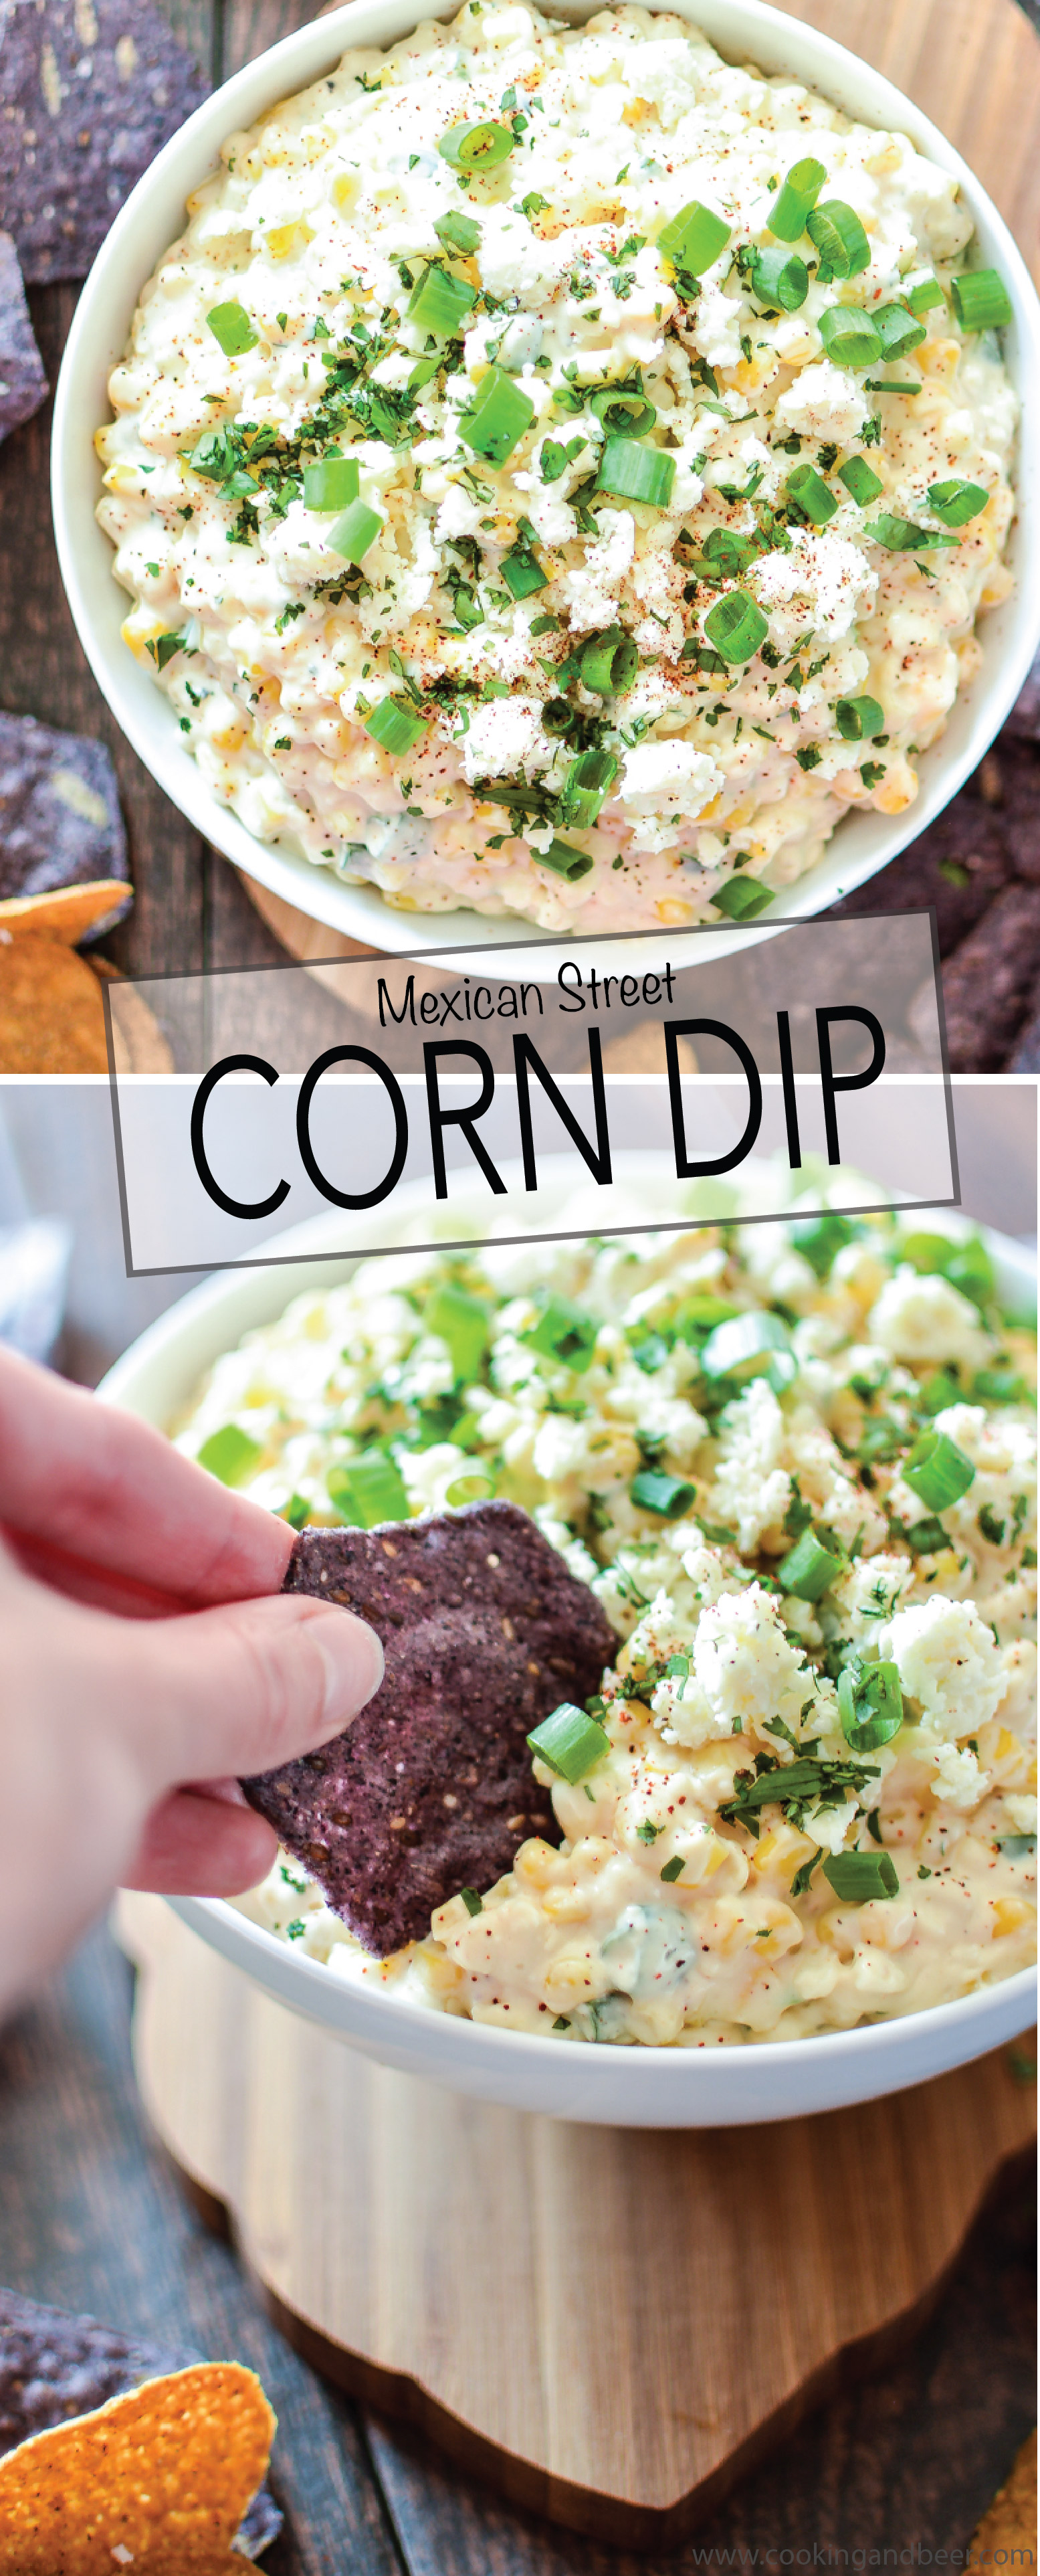 Mexican Street Corn Dip is the perfect appetizer to serve at your Cinco de Mayo party! | www.cookingandbeer.com